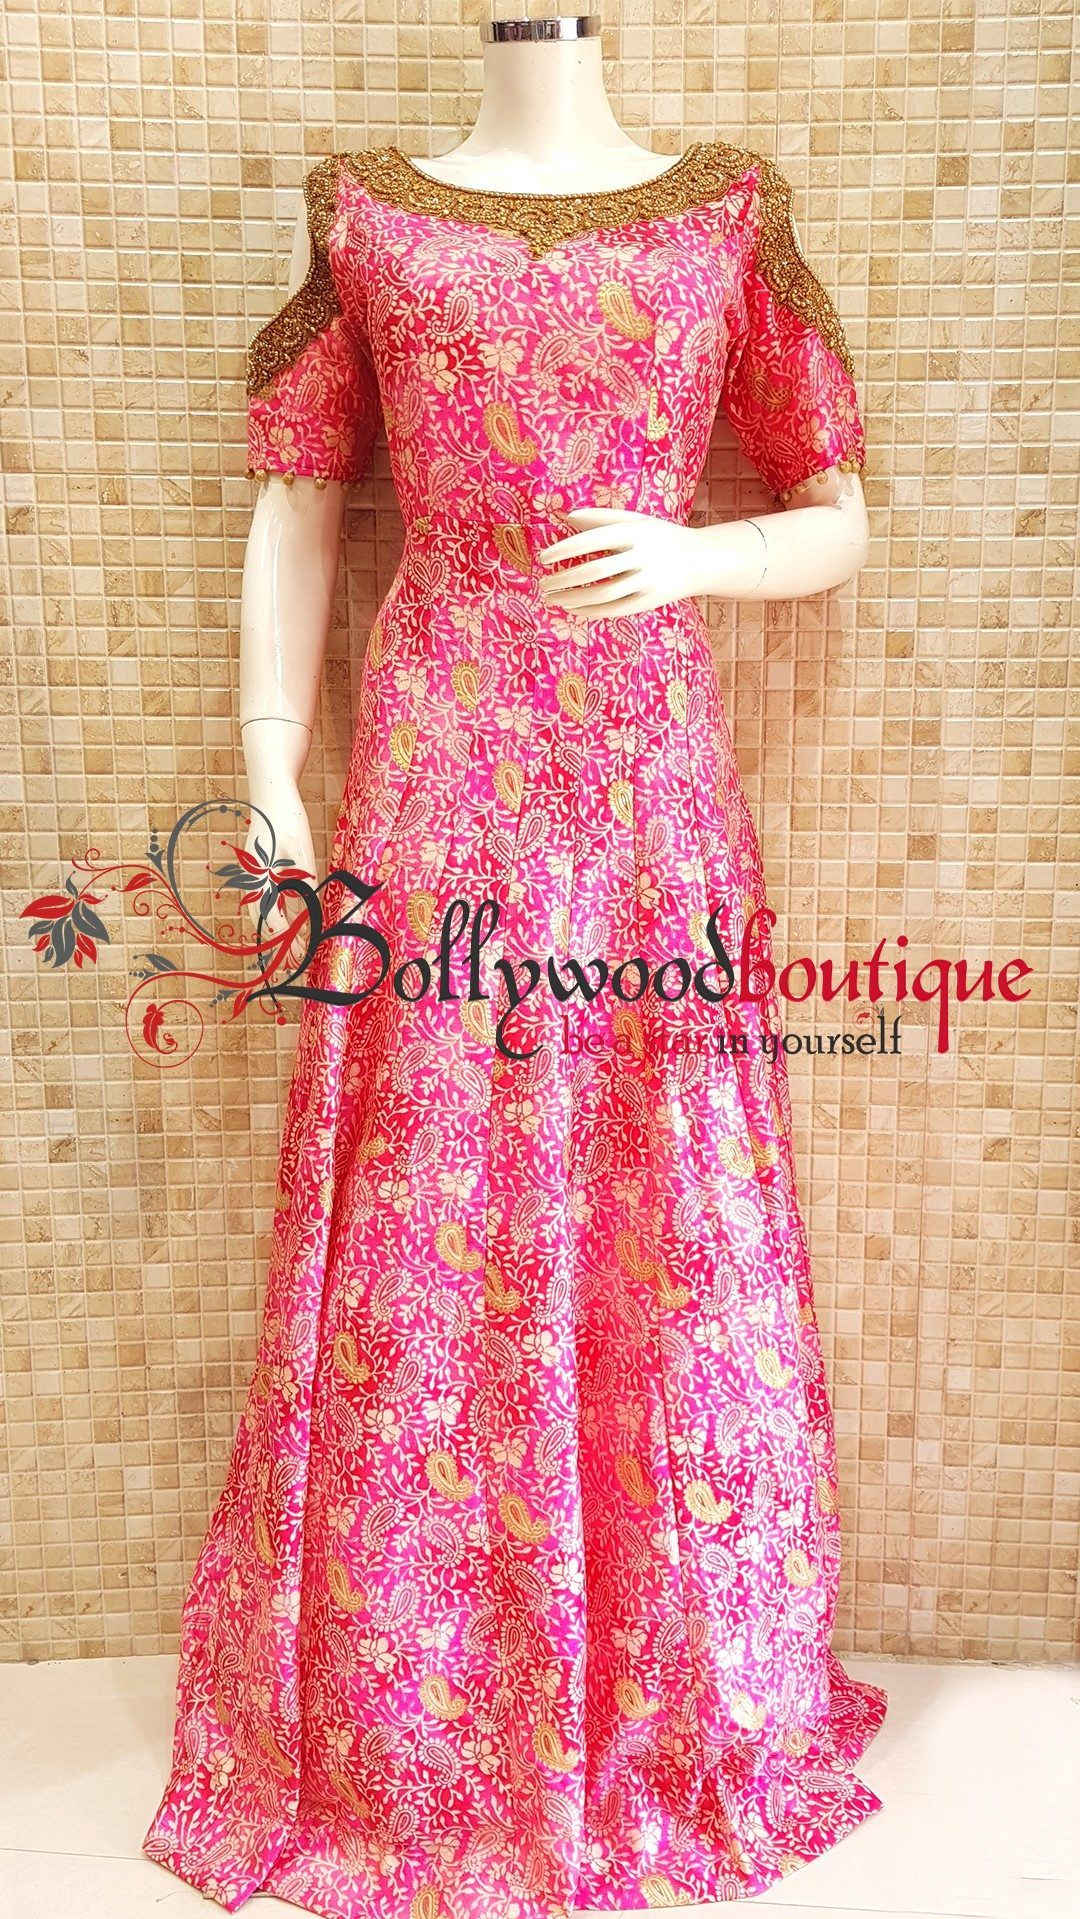 Portfolio Archive - Page 7 of 24 - Bollywood Boutique | Quilling ...